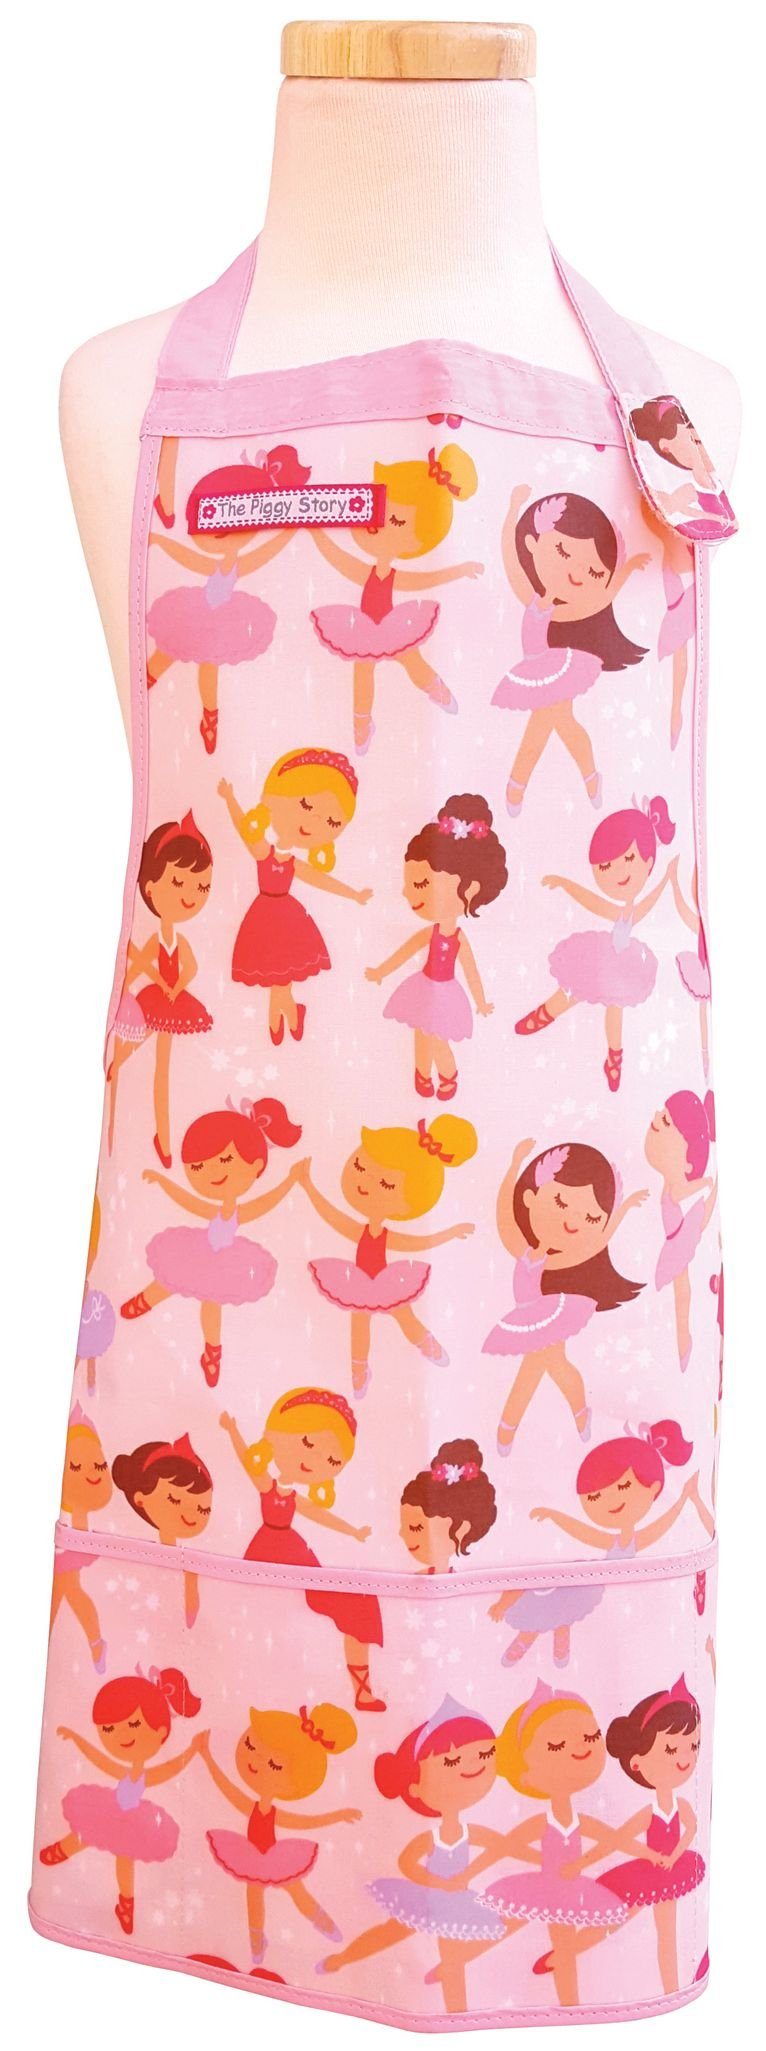 The Piggy Story 'Pretty Ballerinas' Child's Fun Time Apron for Arts, Crafts and Cooking